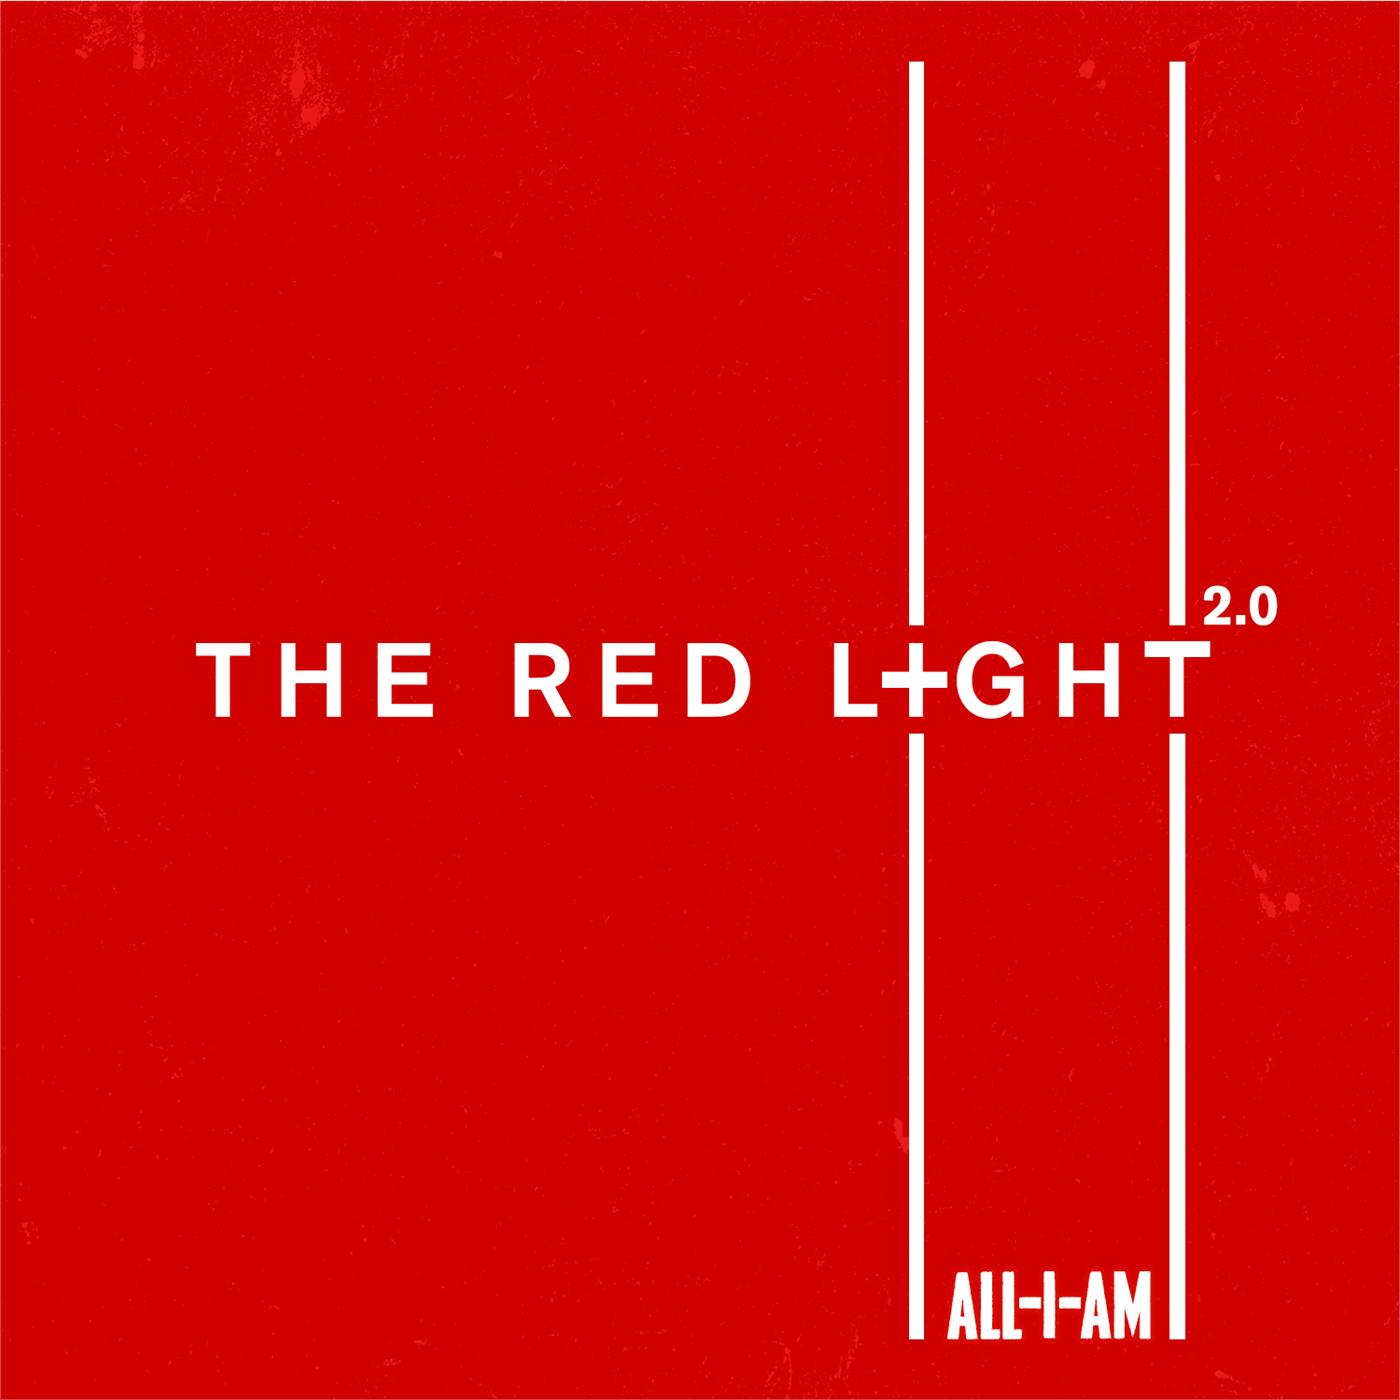 The Red Light 2.0